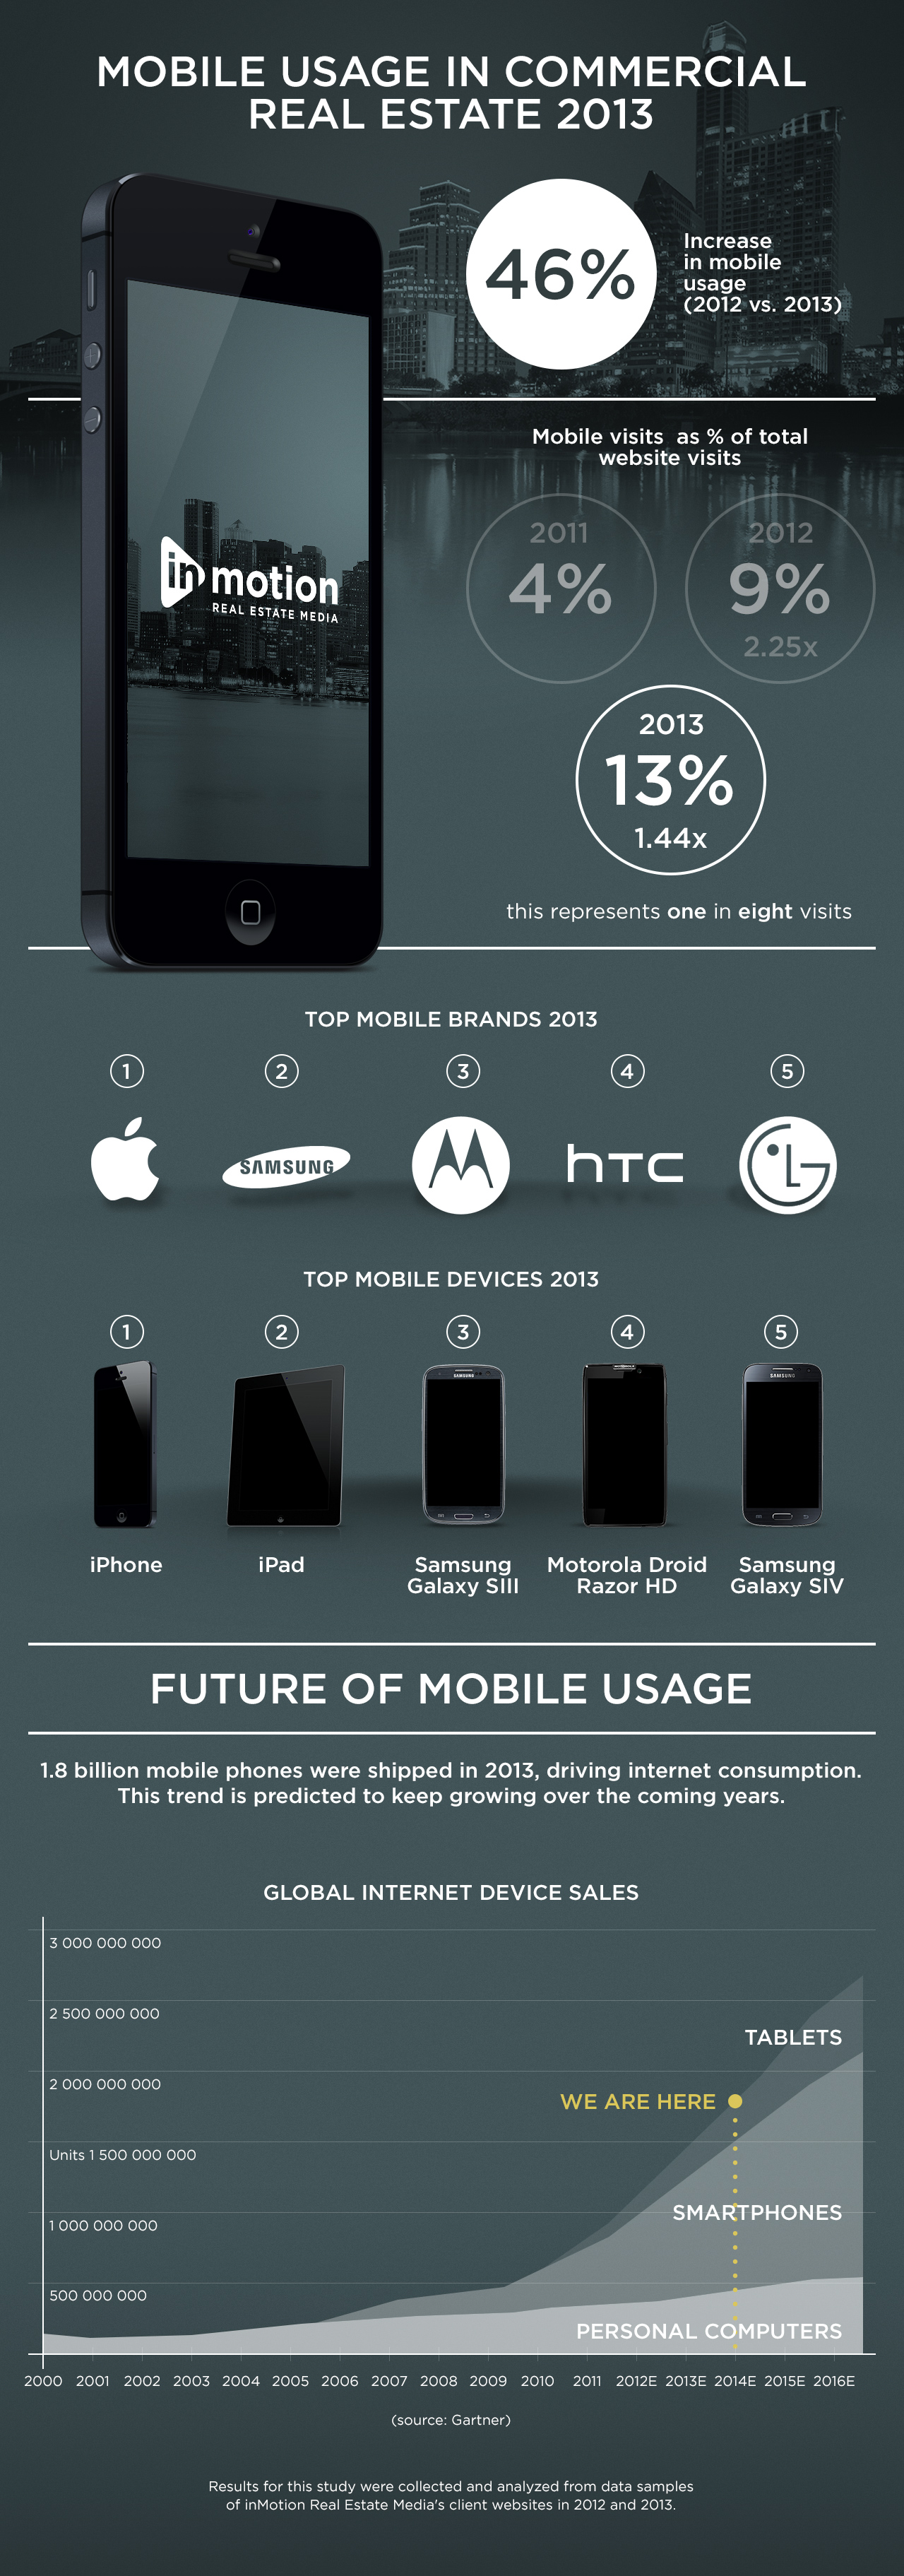 Infographic showing mobile web use in the CRE sector